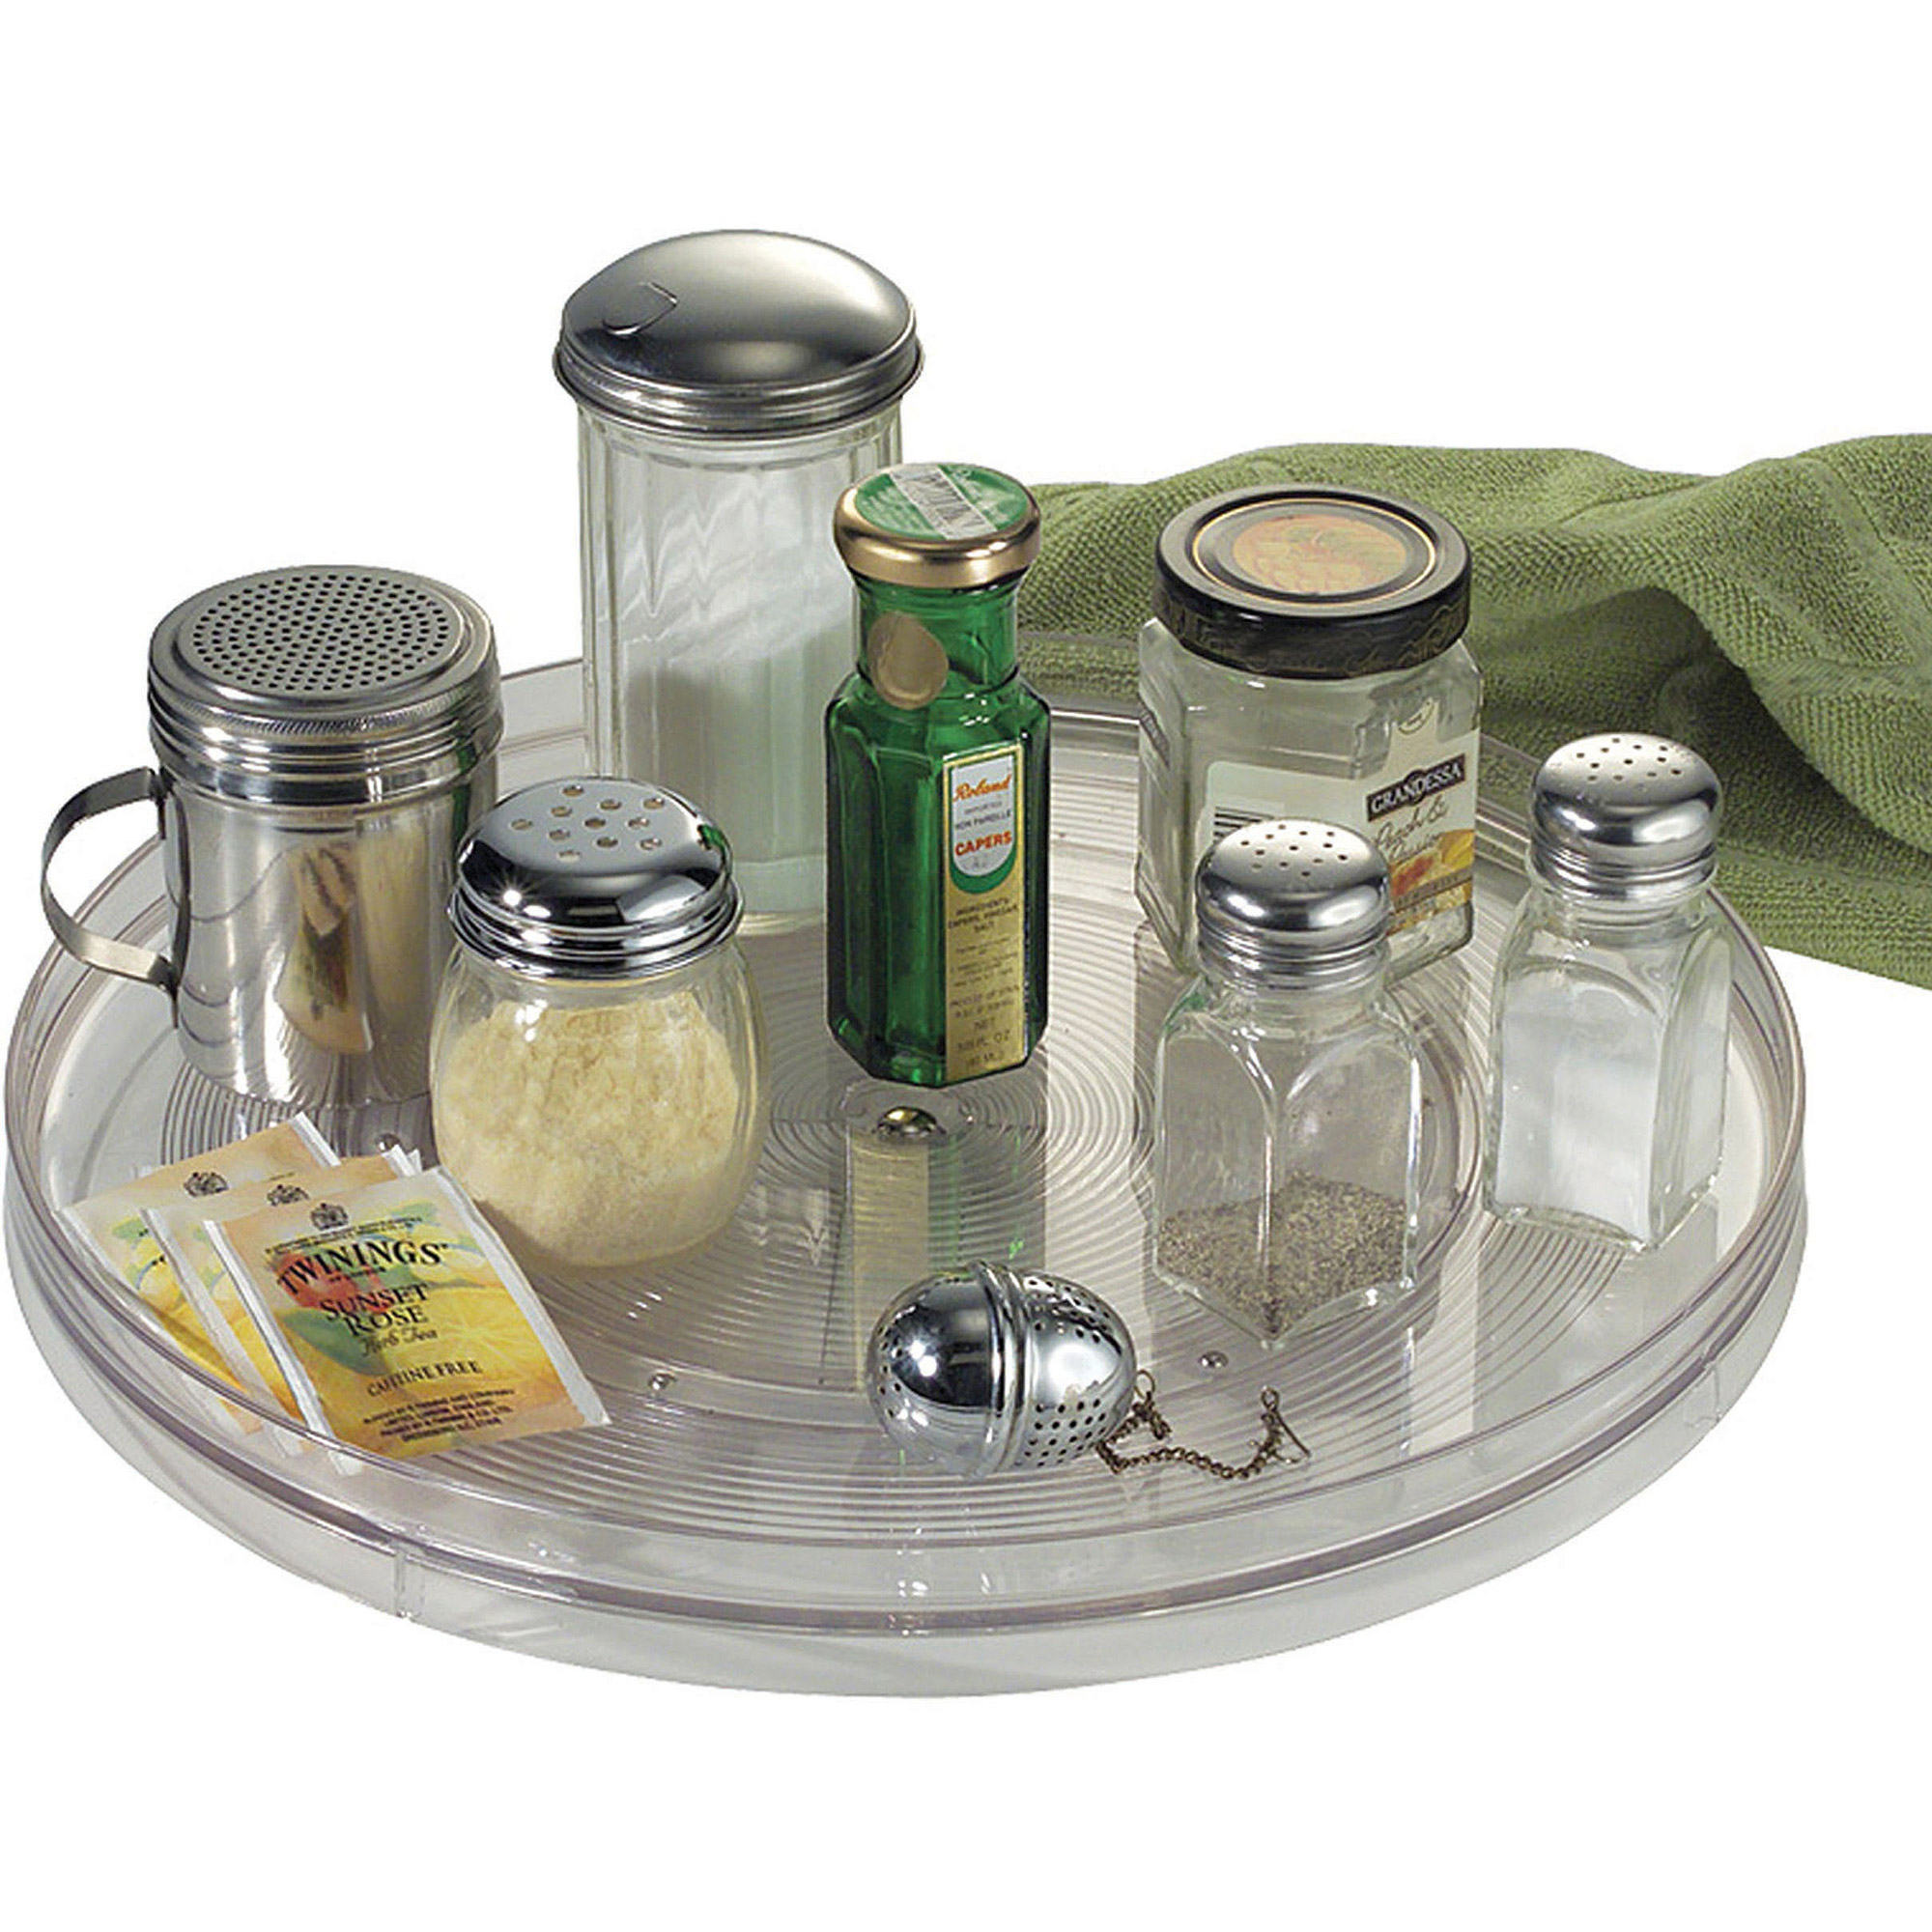 """InterDesign Linus Lazy Susan Turntable Spice Organizer Rack for Kitchen Pantry, Cabinet, Countertops, 14"""", Clear"""